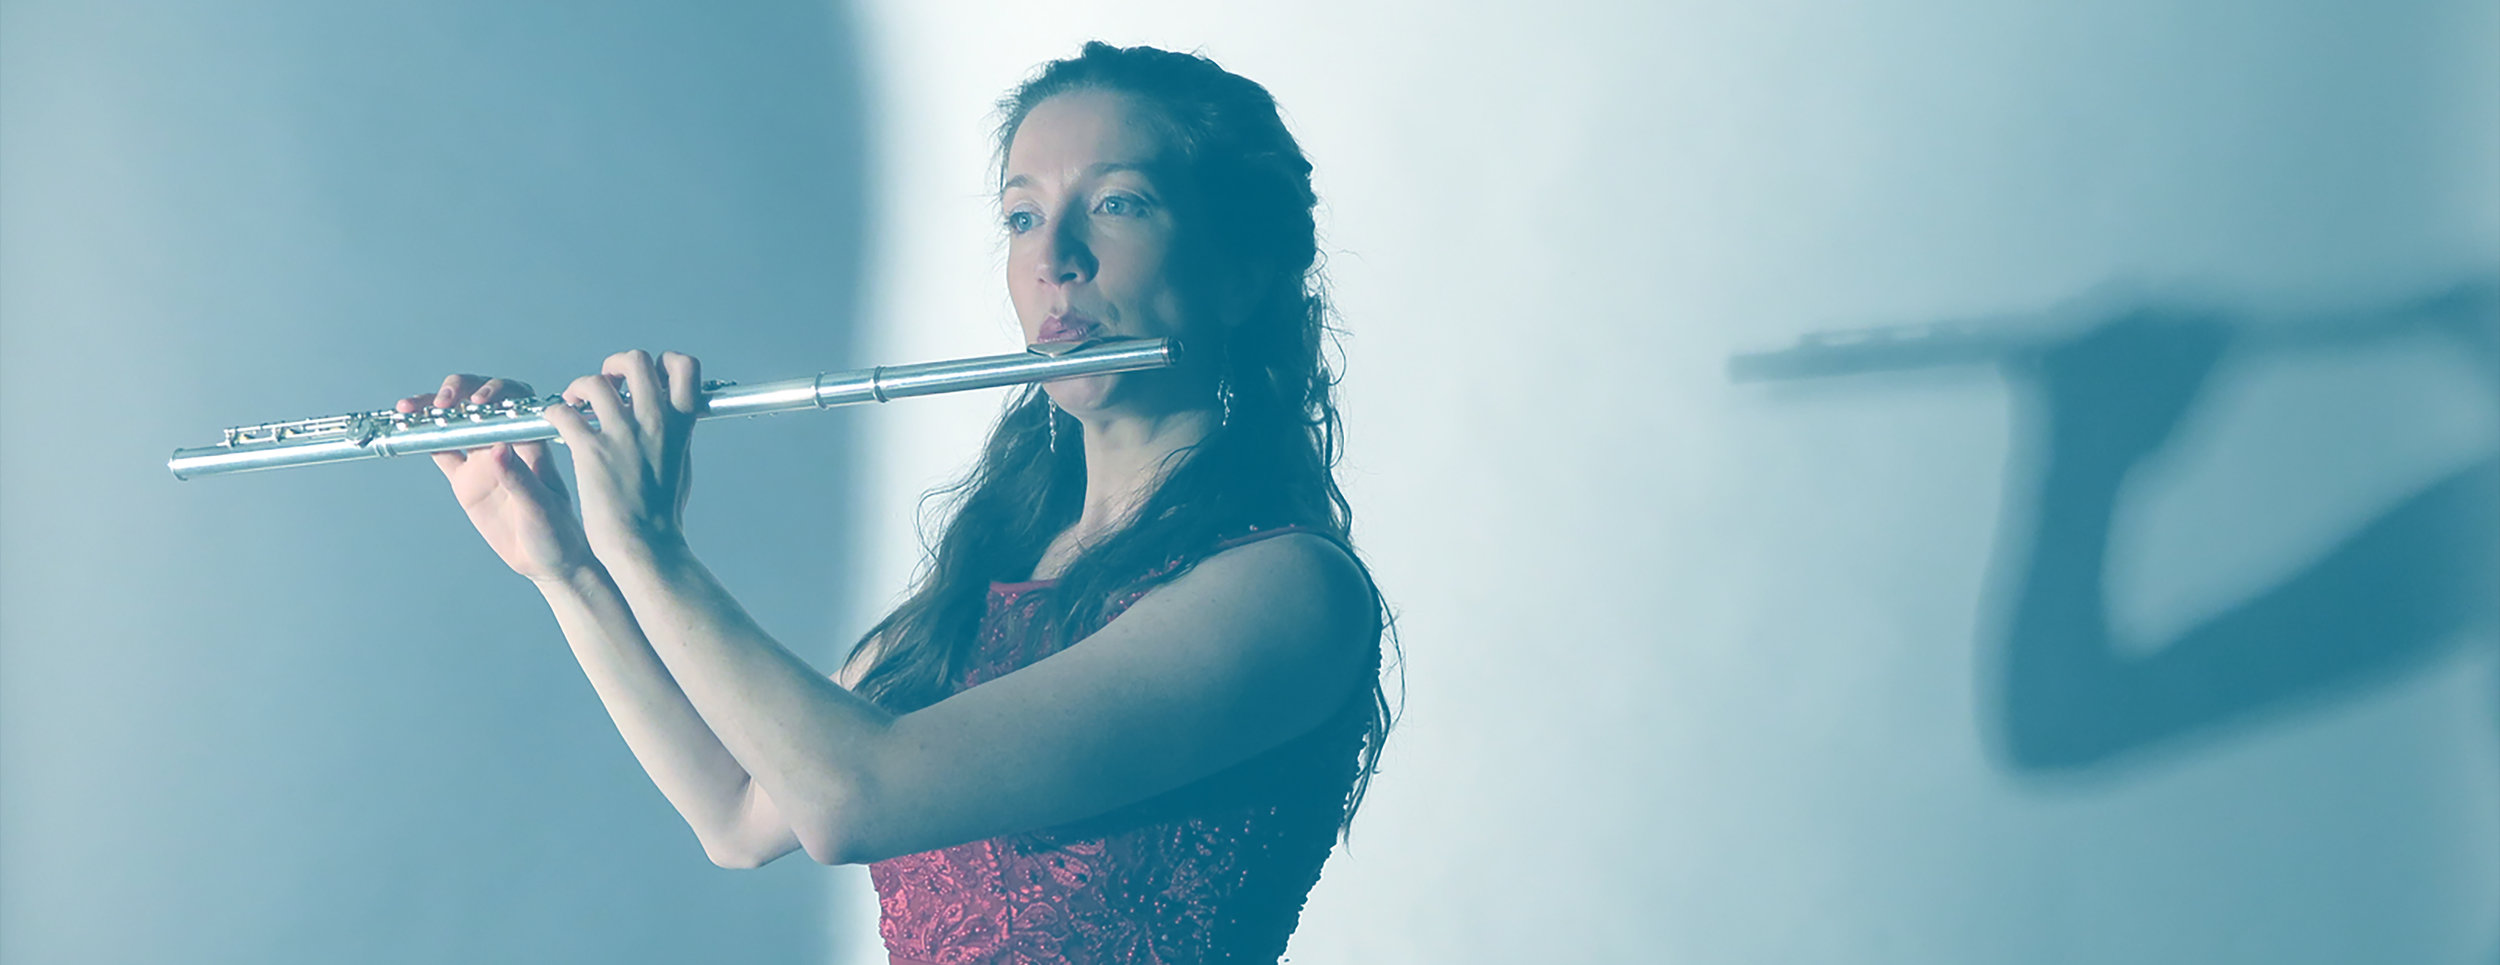 Undercurrents - Queensland Youth Symphony2018 Concert Series